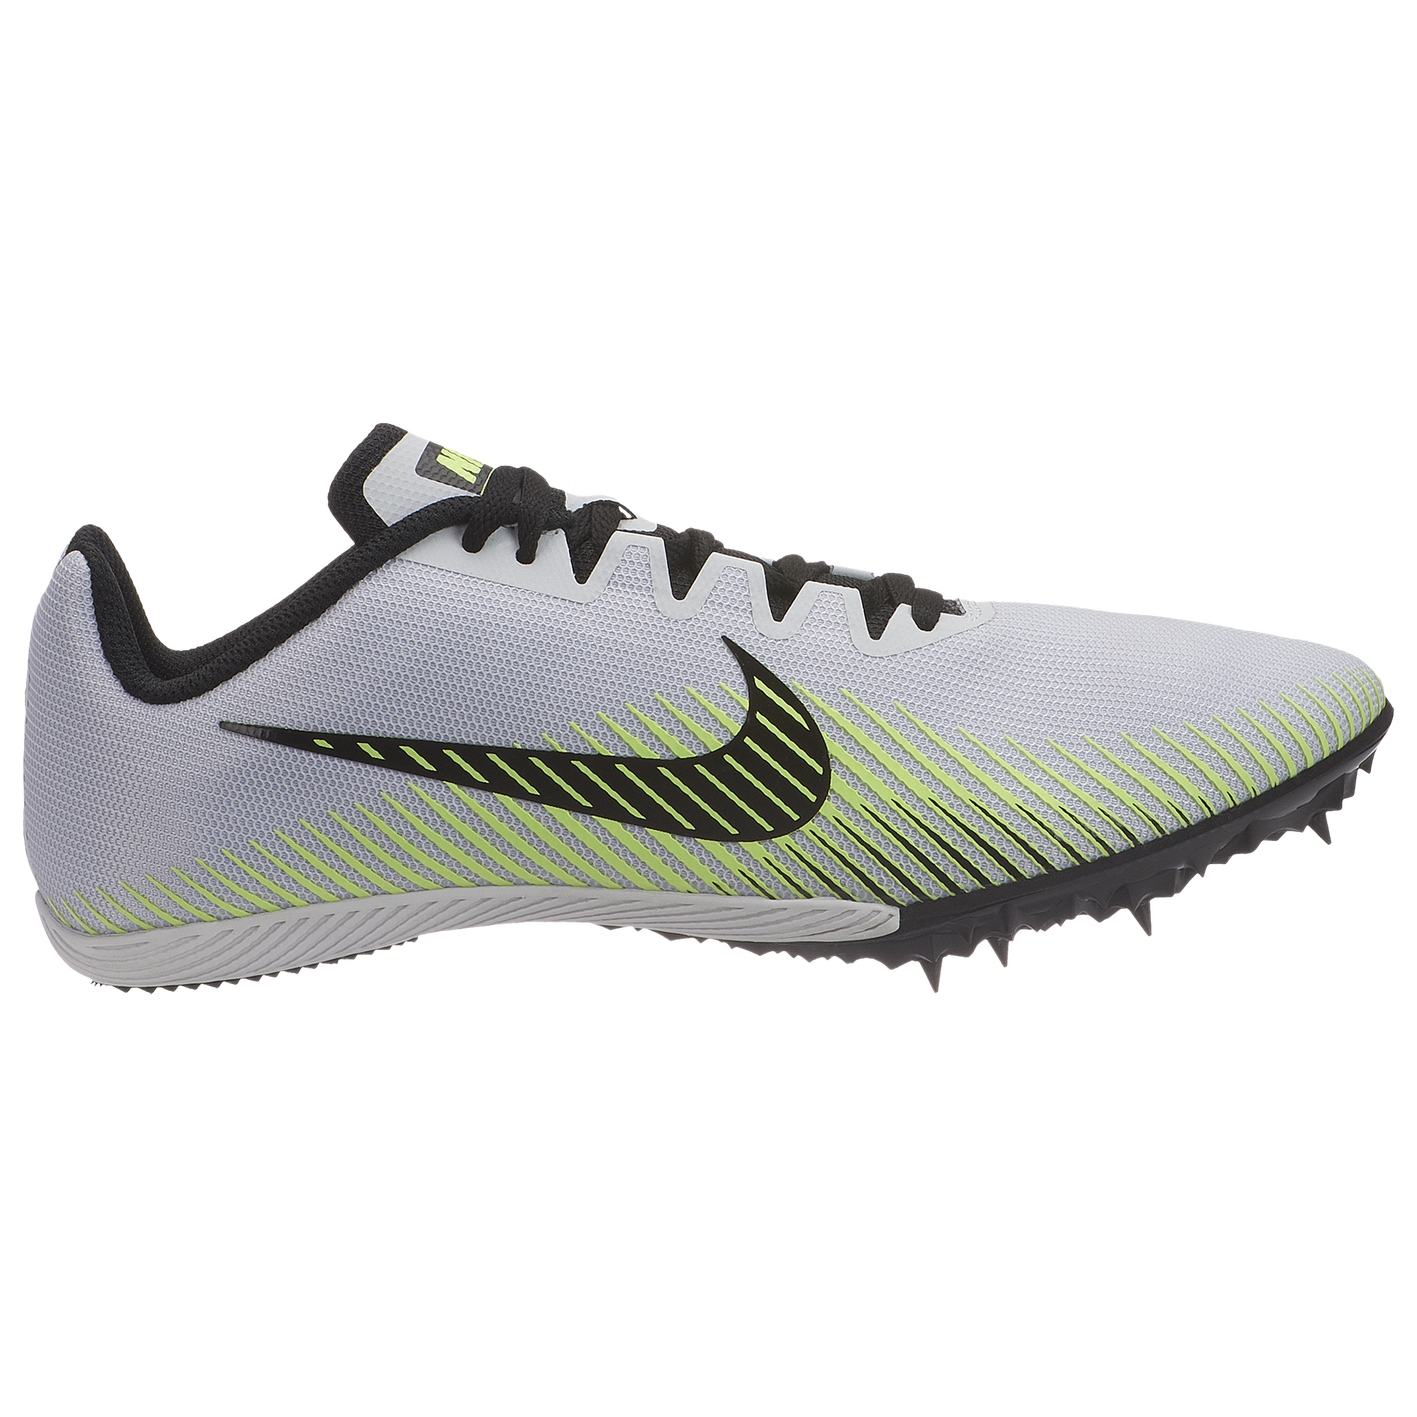 01e5020196a4 Nike Zoom Rival M 9 - Men s - Track   Field - Shoes - Pure Platinum ...